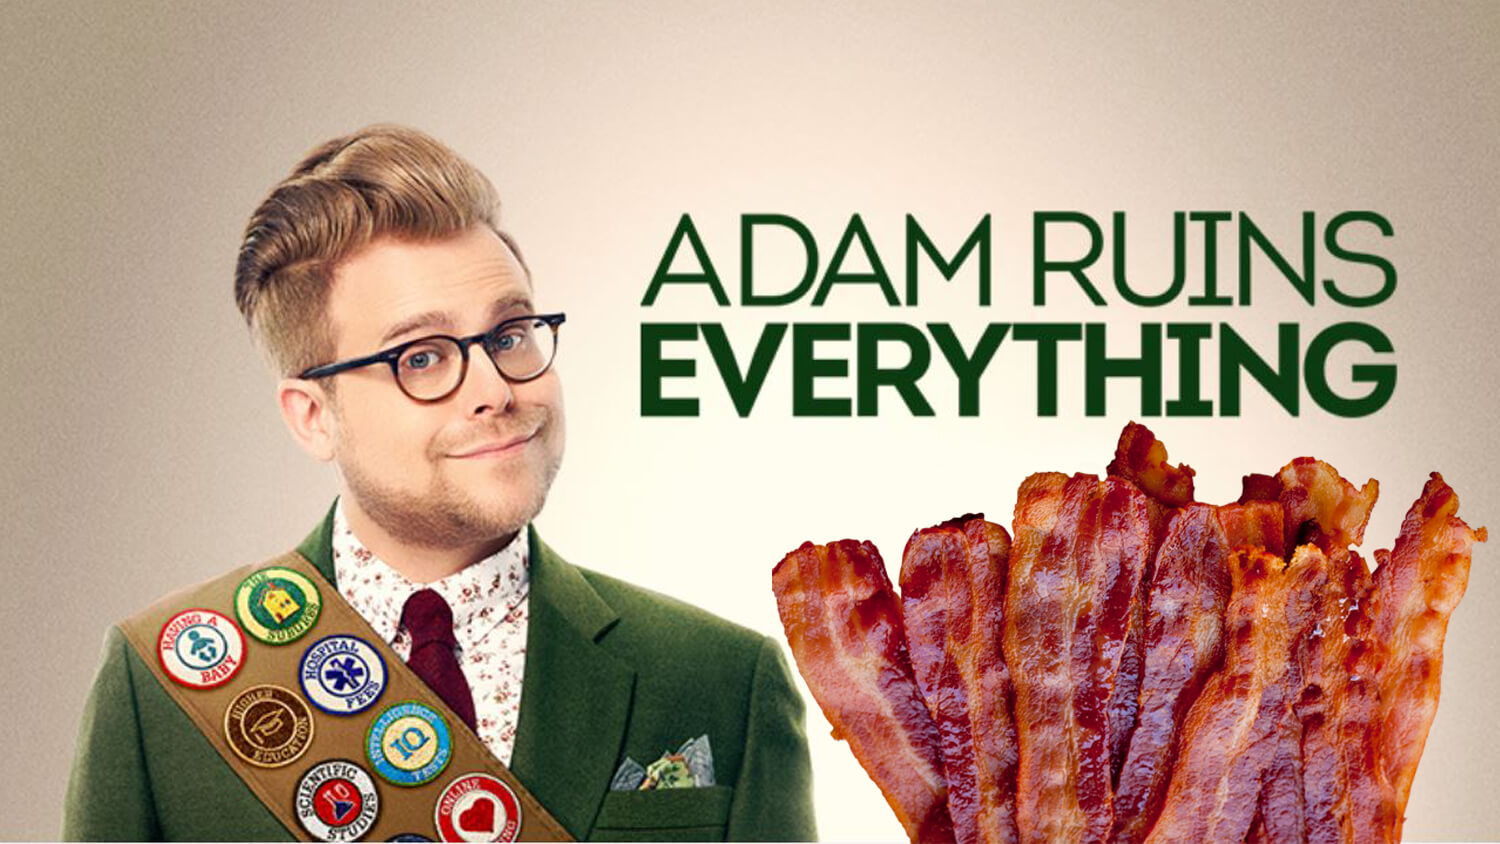 'Adam Ruins Everything' Exposes The Meat Industry's Bacon Conspiracy